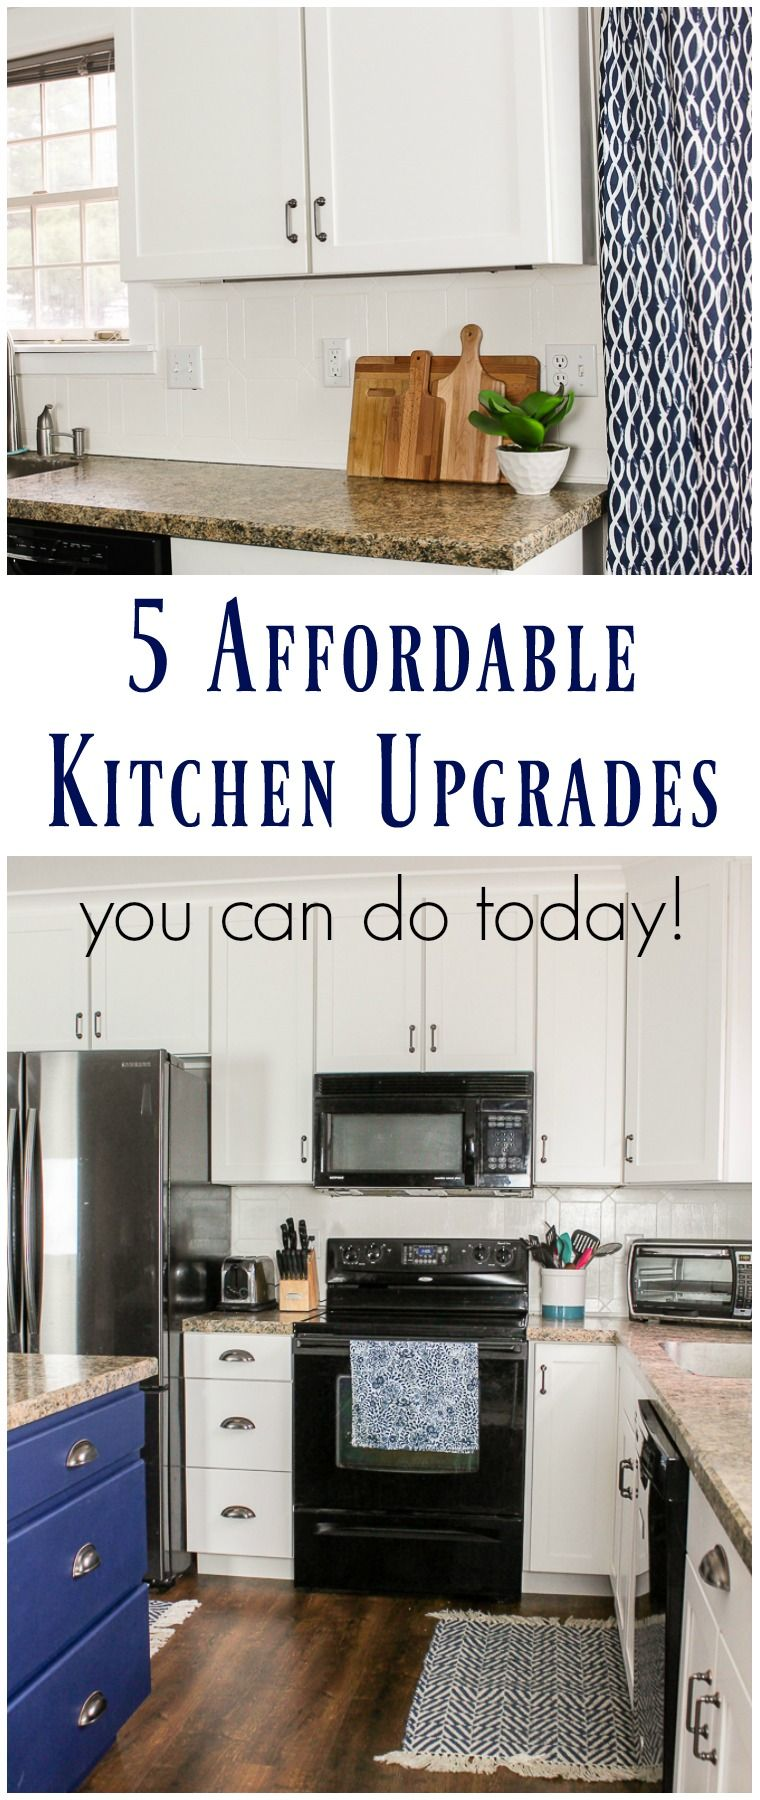 Merveilleux Affordable Kitchen Upgrades You Can Do To Increase The Value Of Your Home